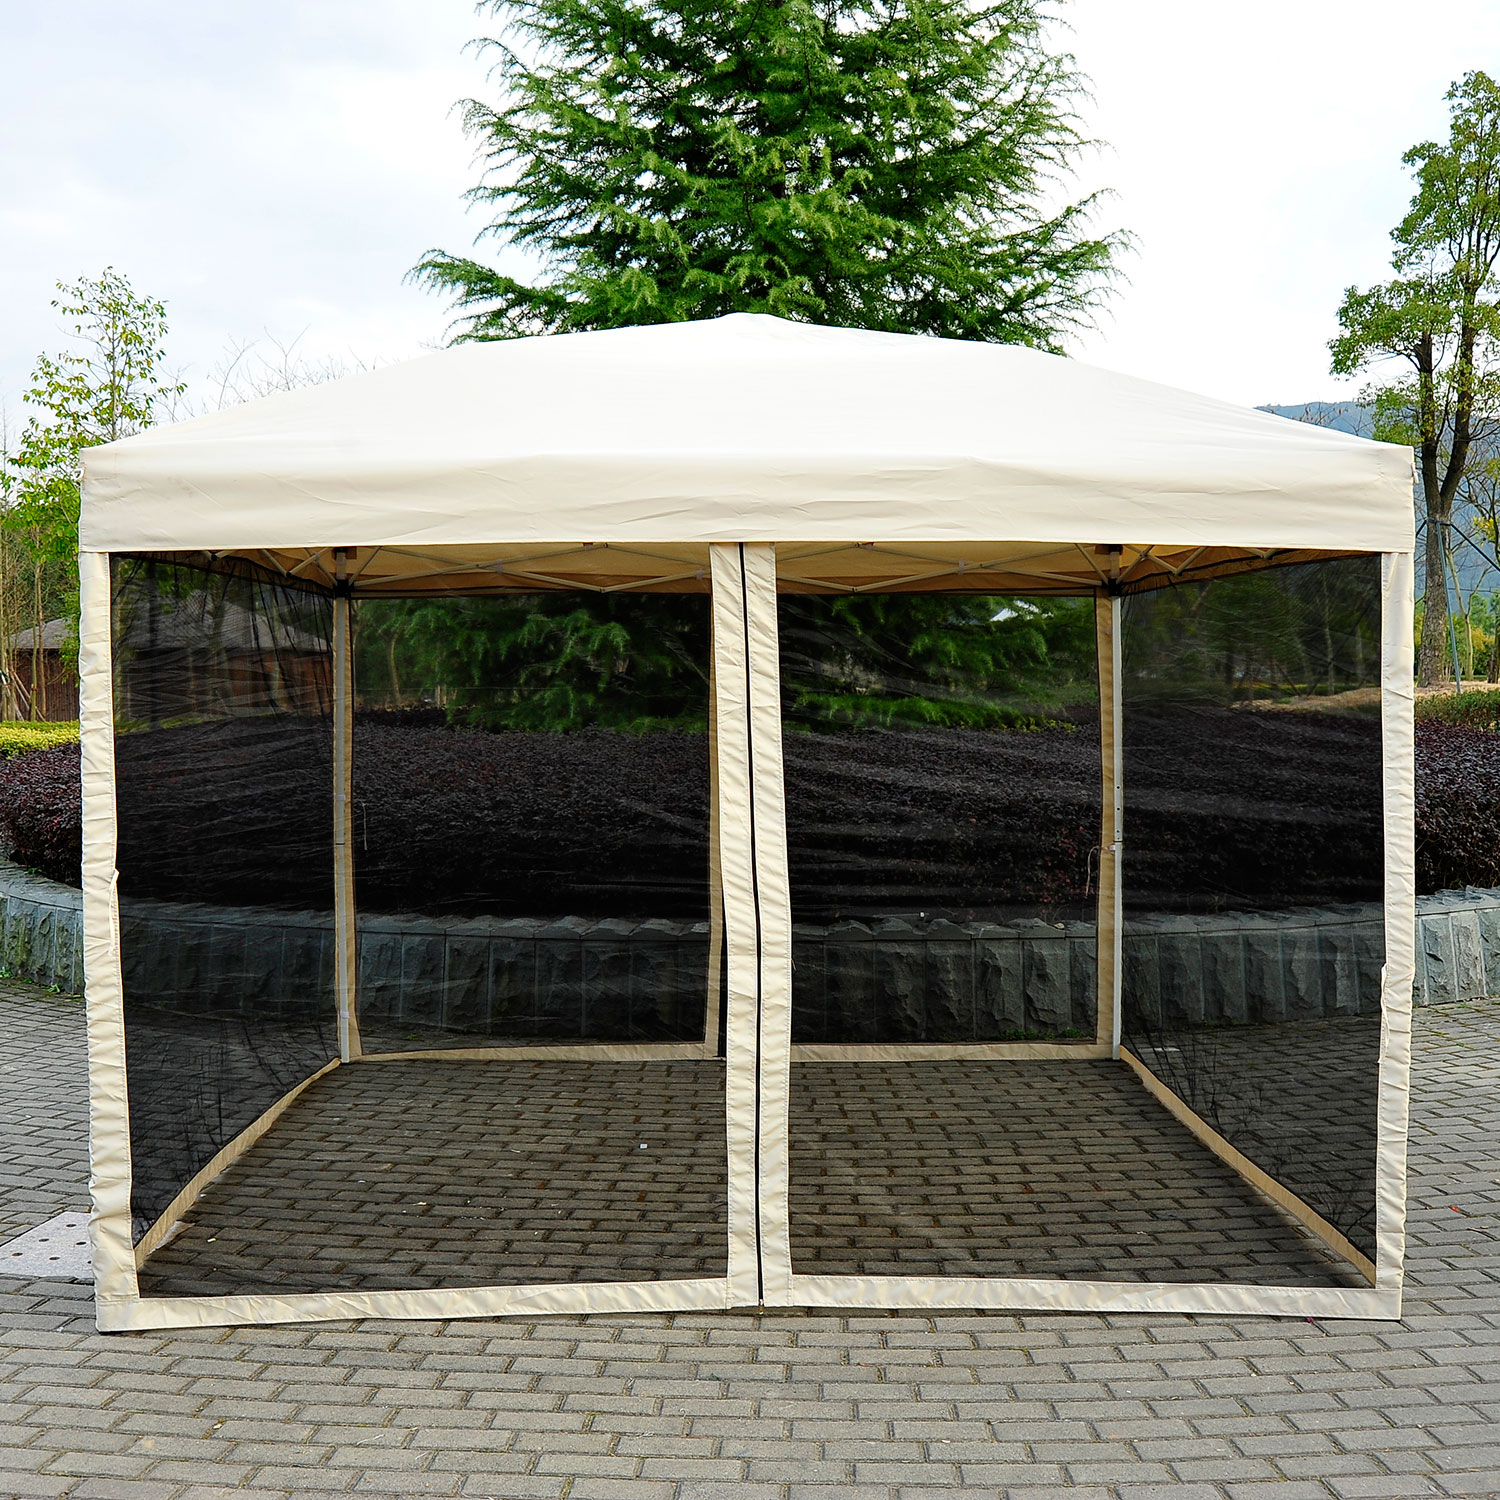 12 X 12 Screened Gazebo | Half Price Gazebo | Screened Gazebo